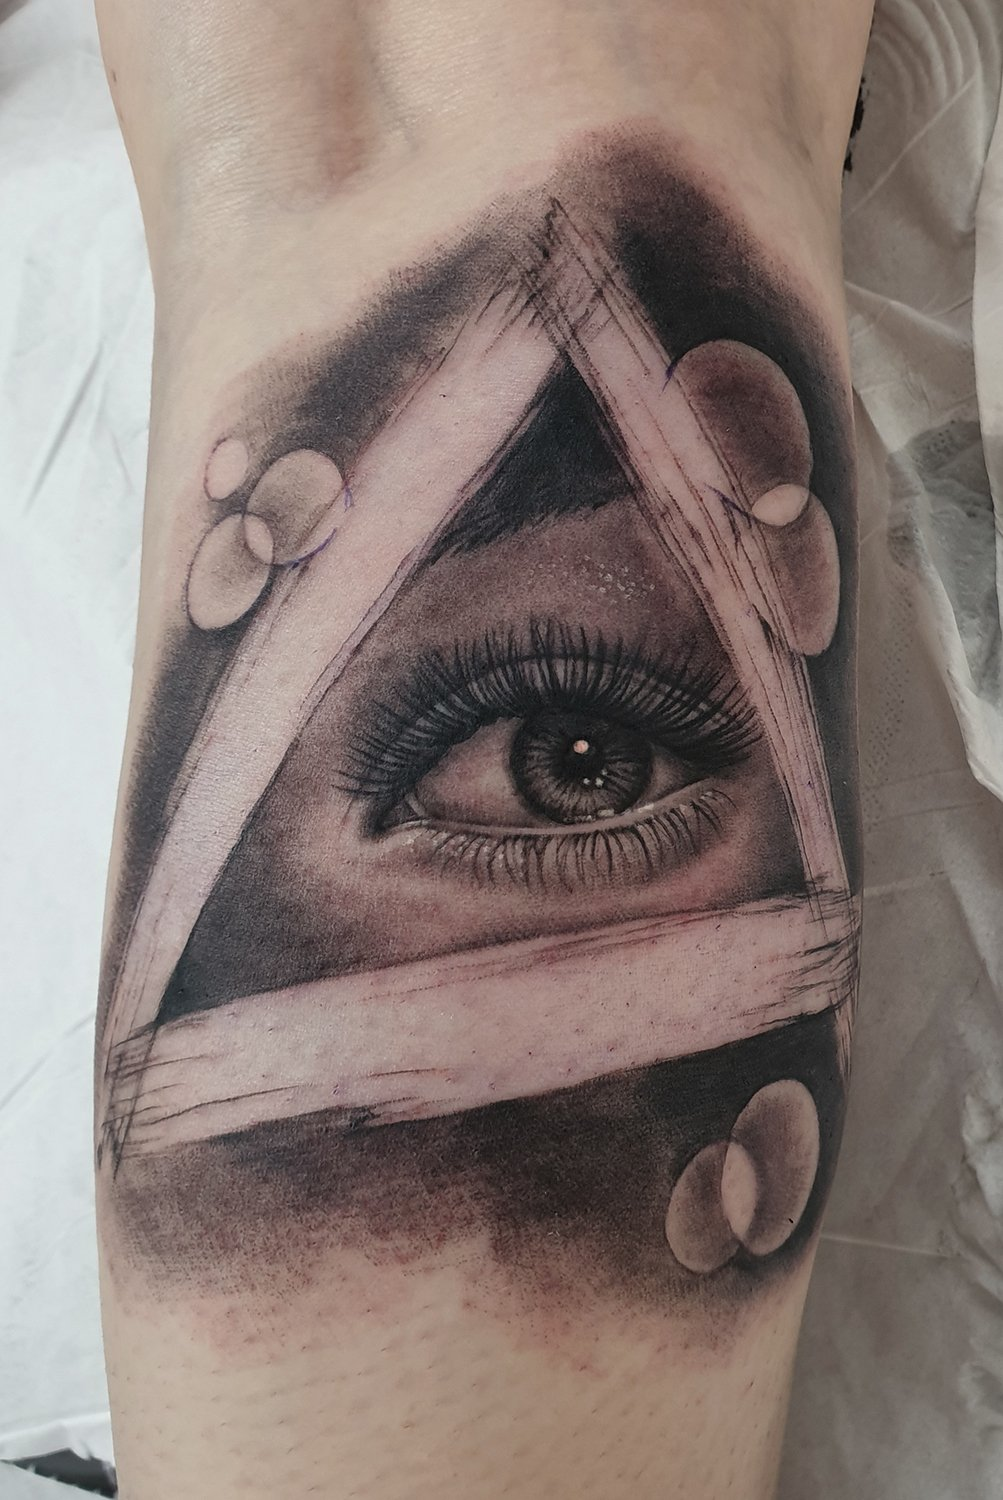 illuminati eye realism tattoo secret society tattoo